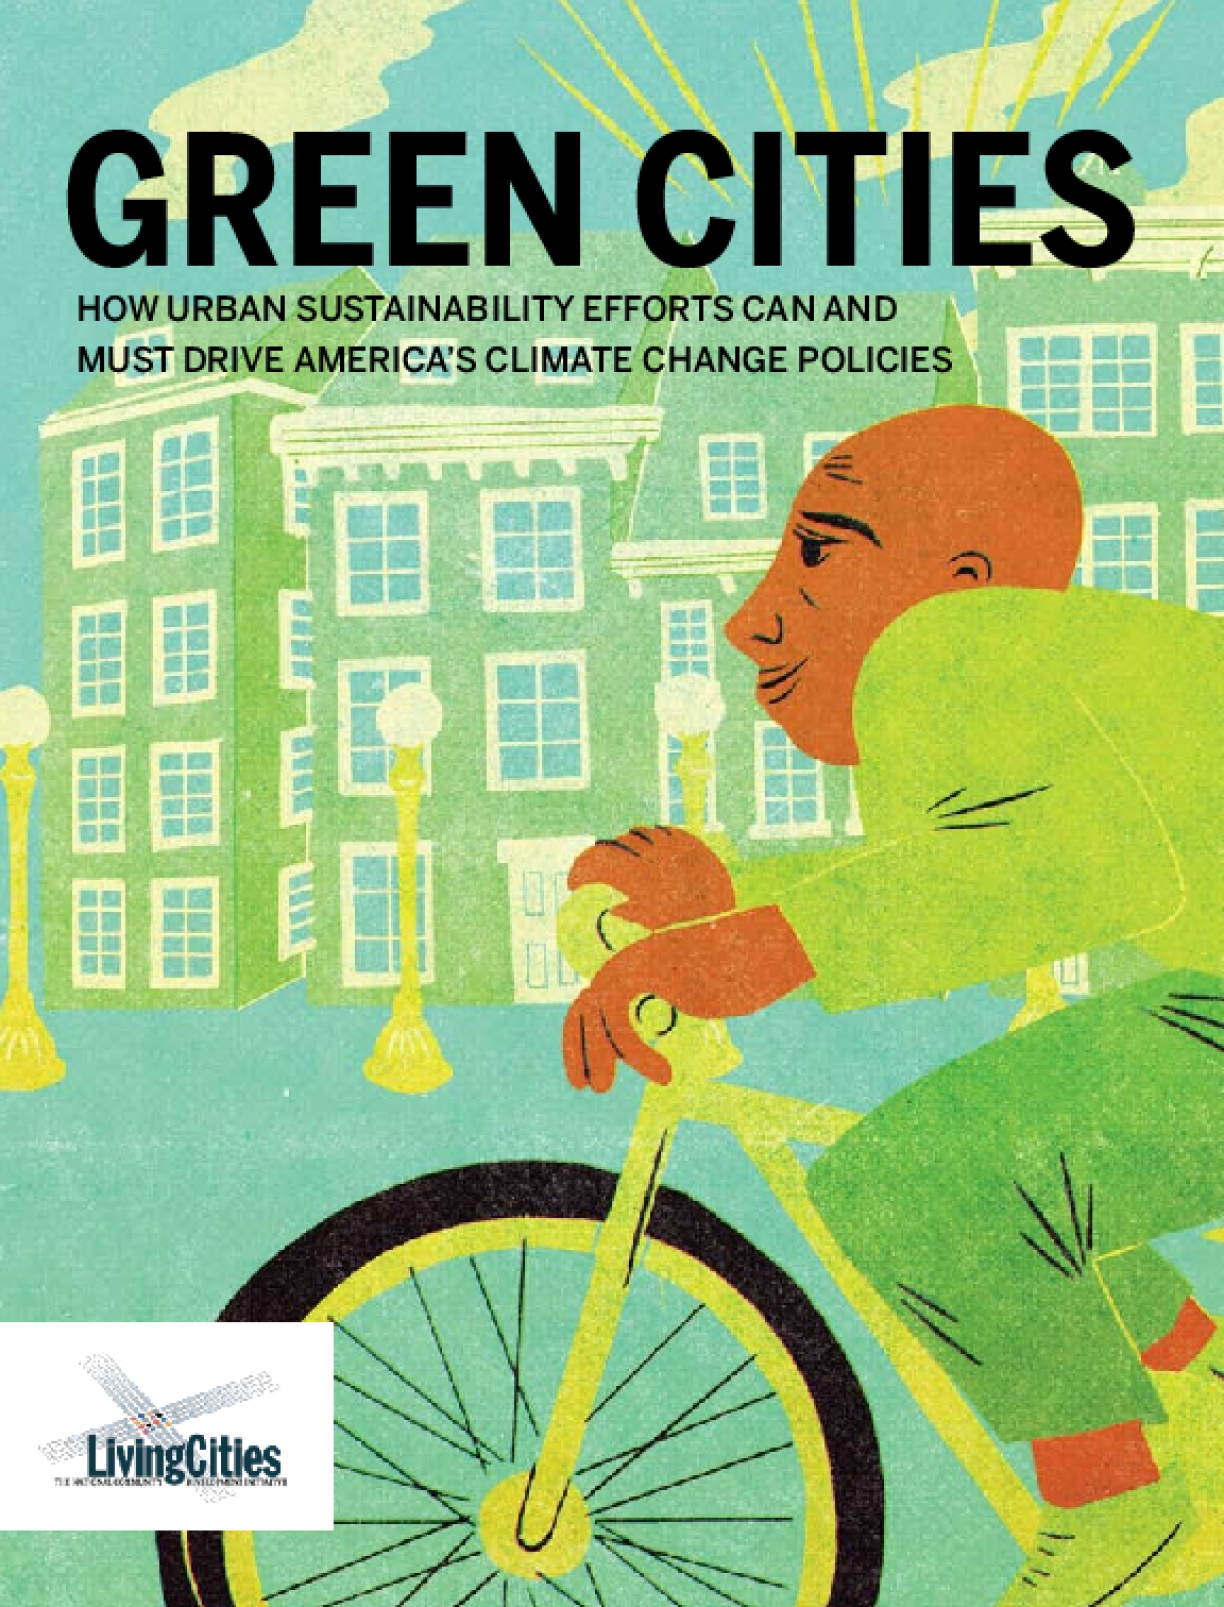 Green Cities: How Urban Sustainability Efforts Can and Must Drive America's Climate Change Policies